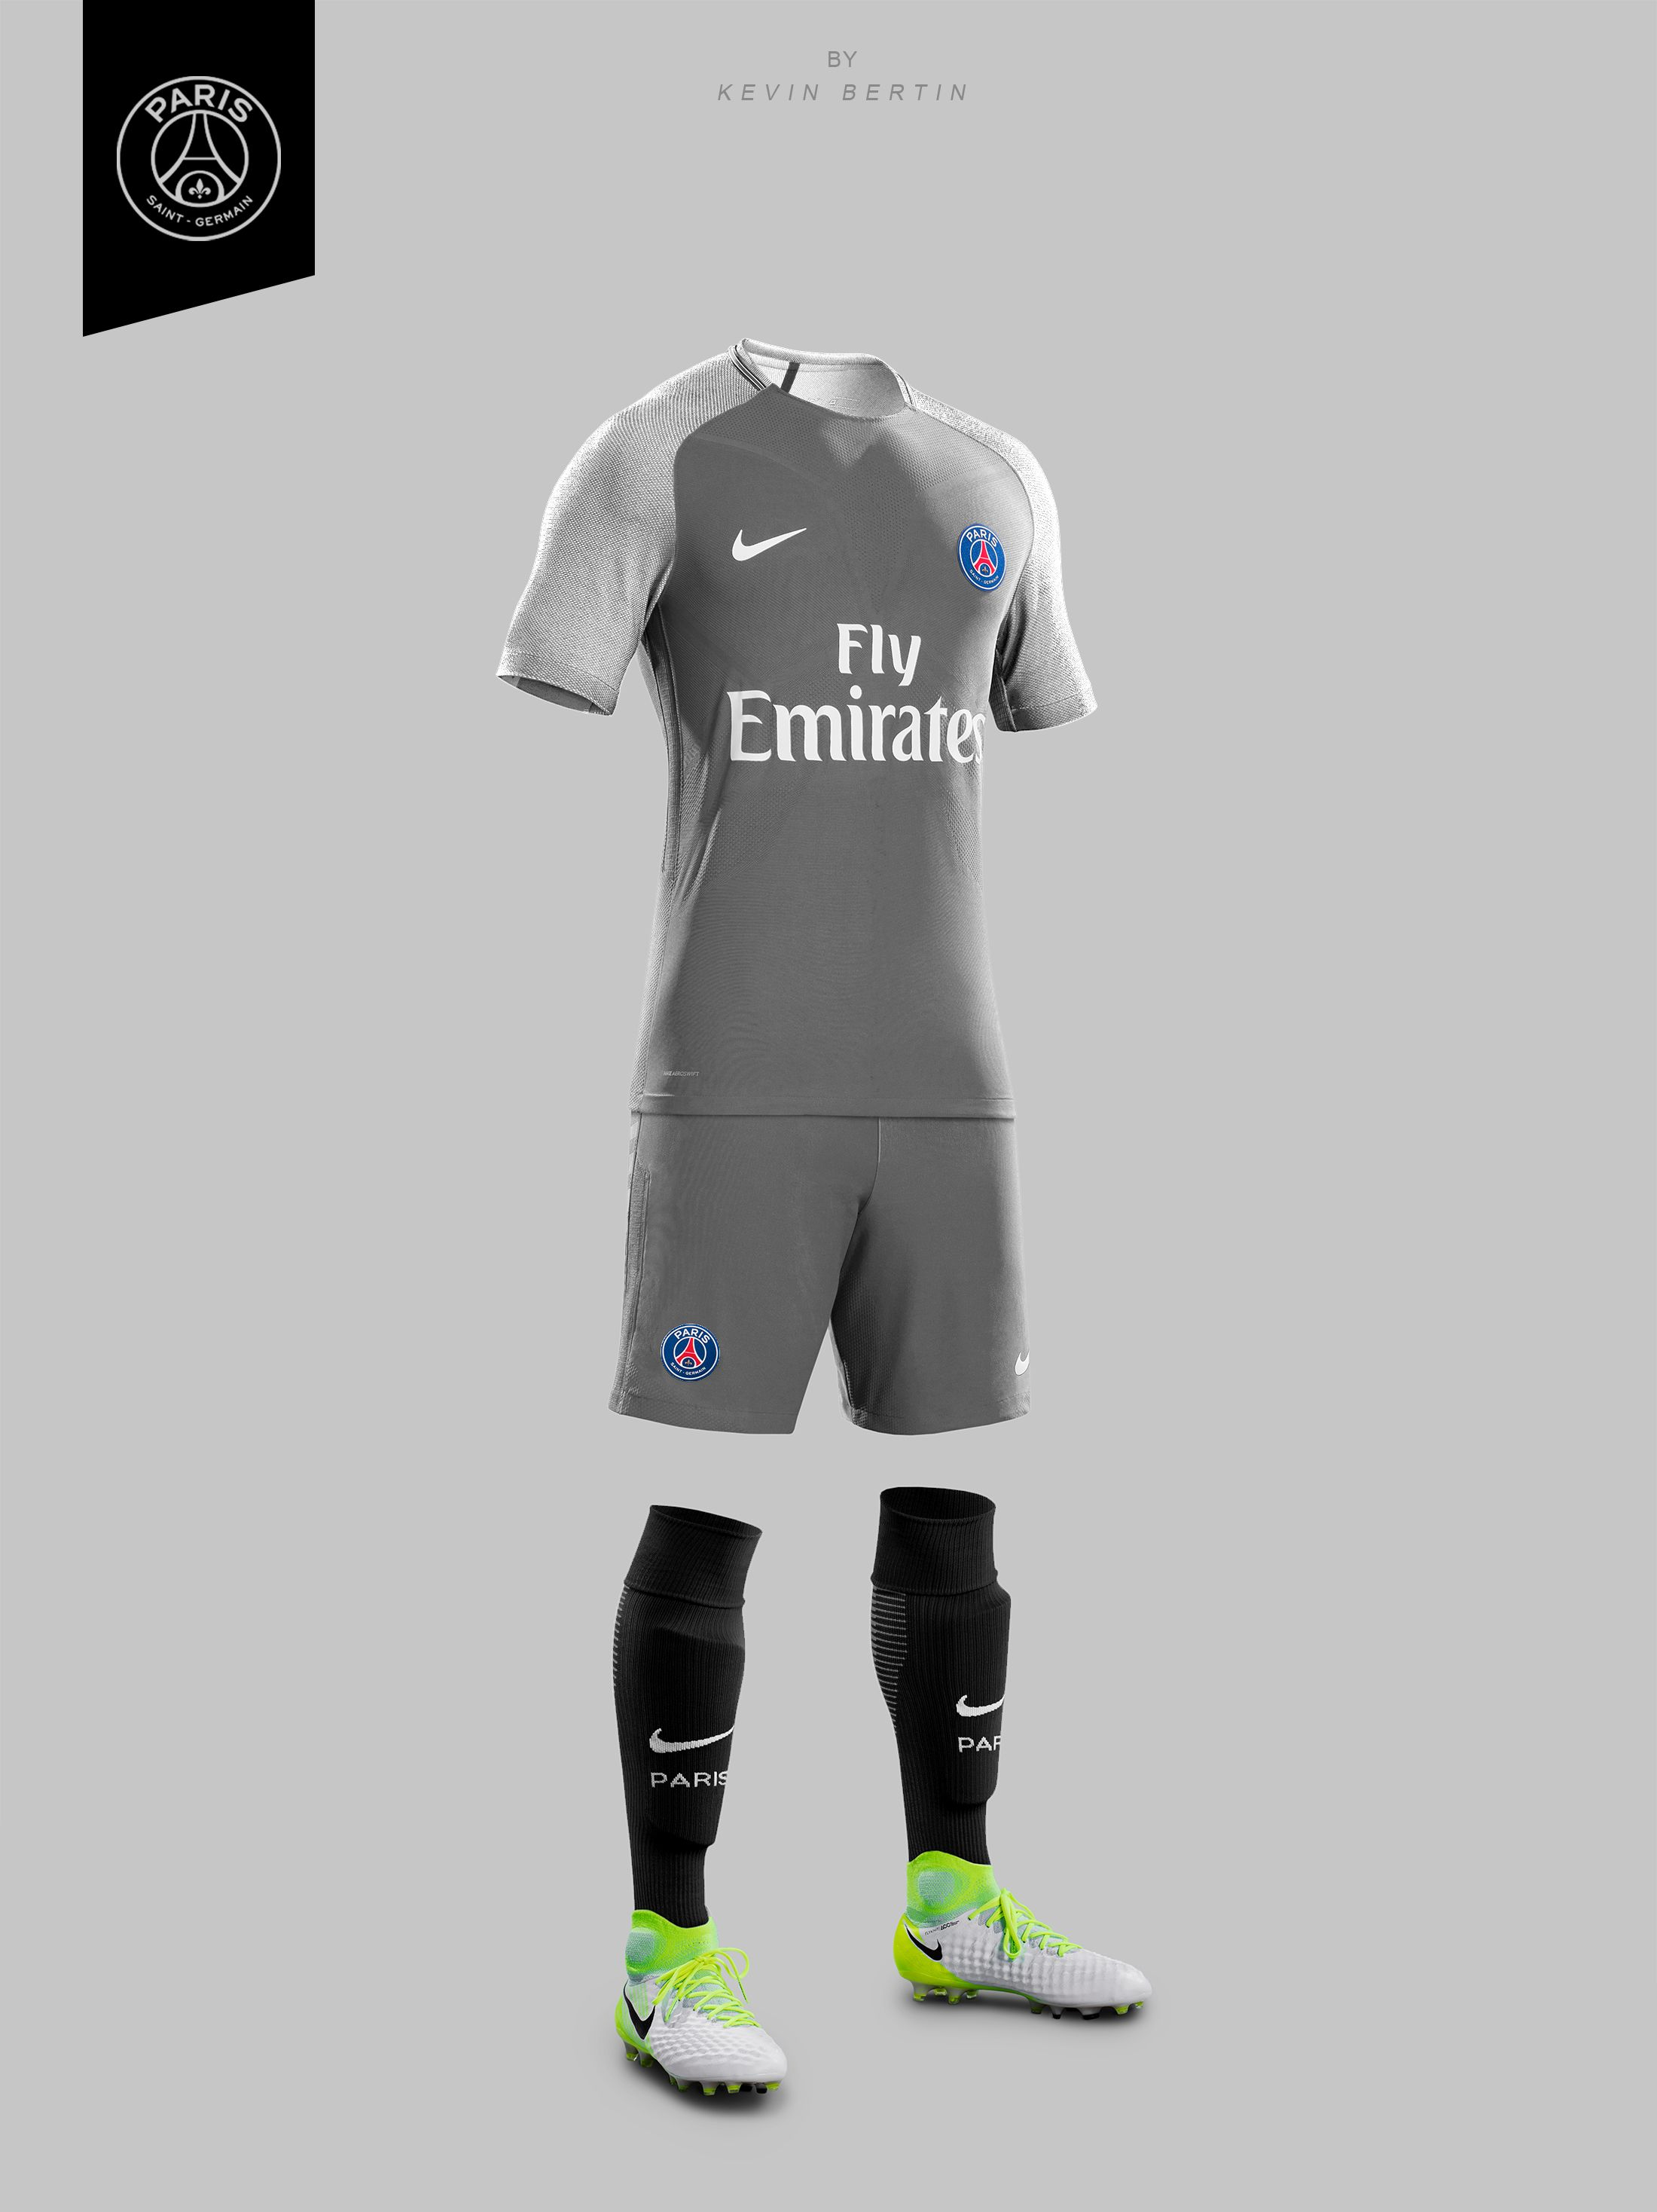 64e08b42 PSG Concept Design by Kevin Bertin Jersey Maillot kit Nike 2019 Paris Saint- Germain